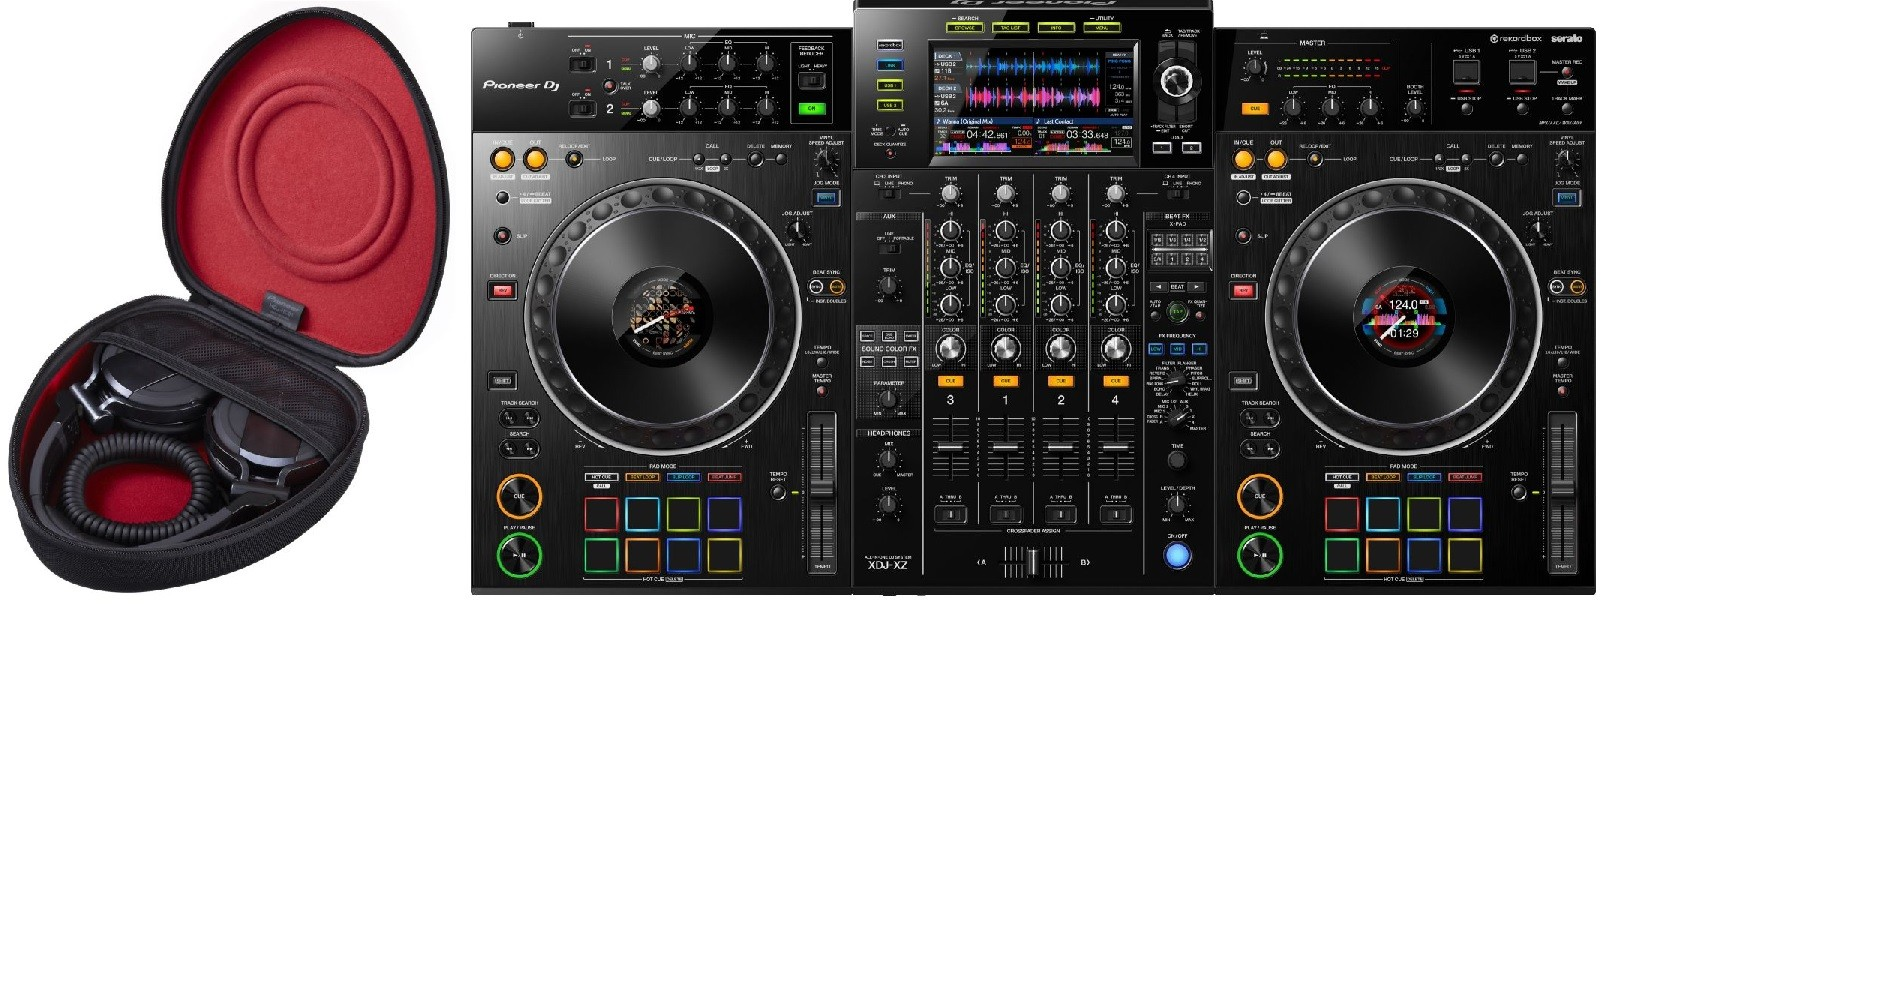 https://www.musicalbarquillo.com/index.php?id_product=8349&id_product_attribute=0&rewrite=pack-pioneer-xdjxz-hdjx5-bthc01&controller=product